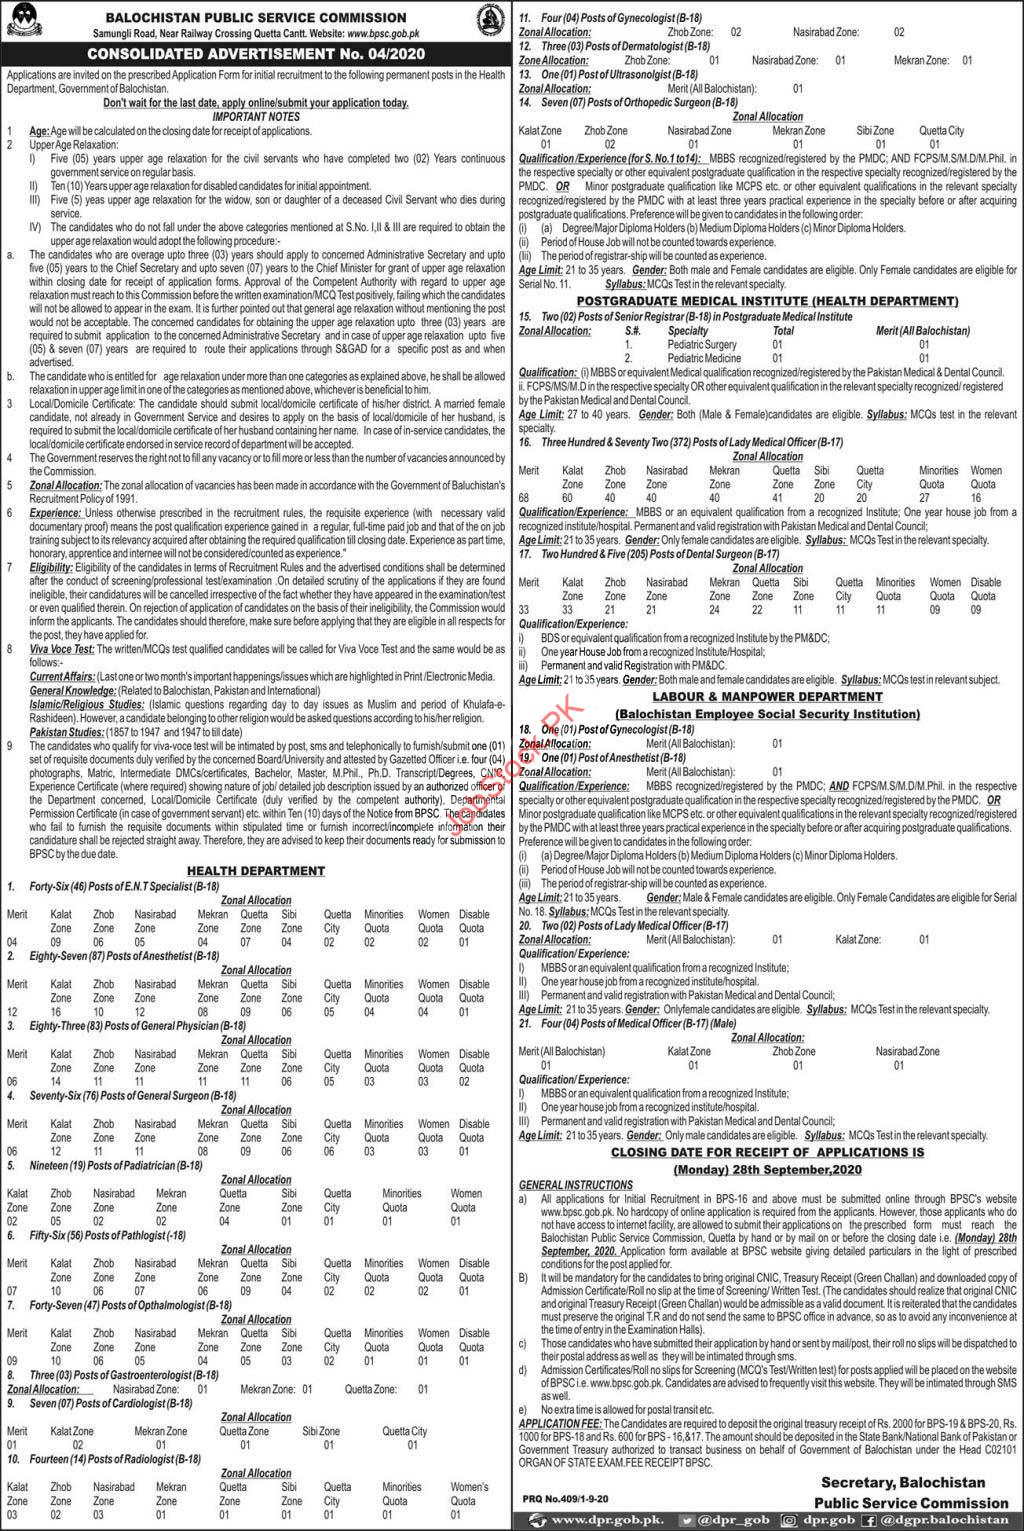 Bpsc Jobs 2020 Latest